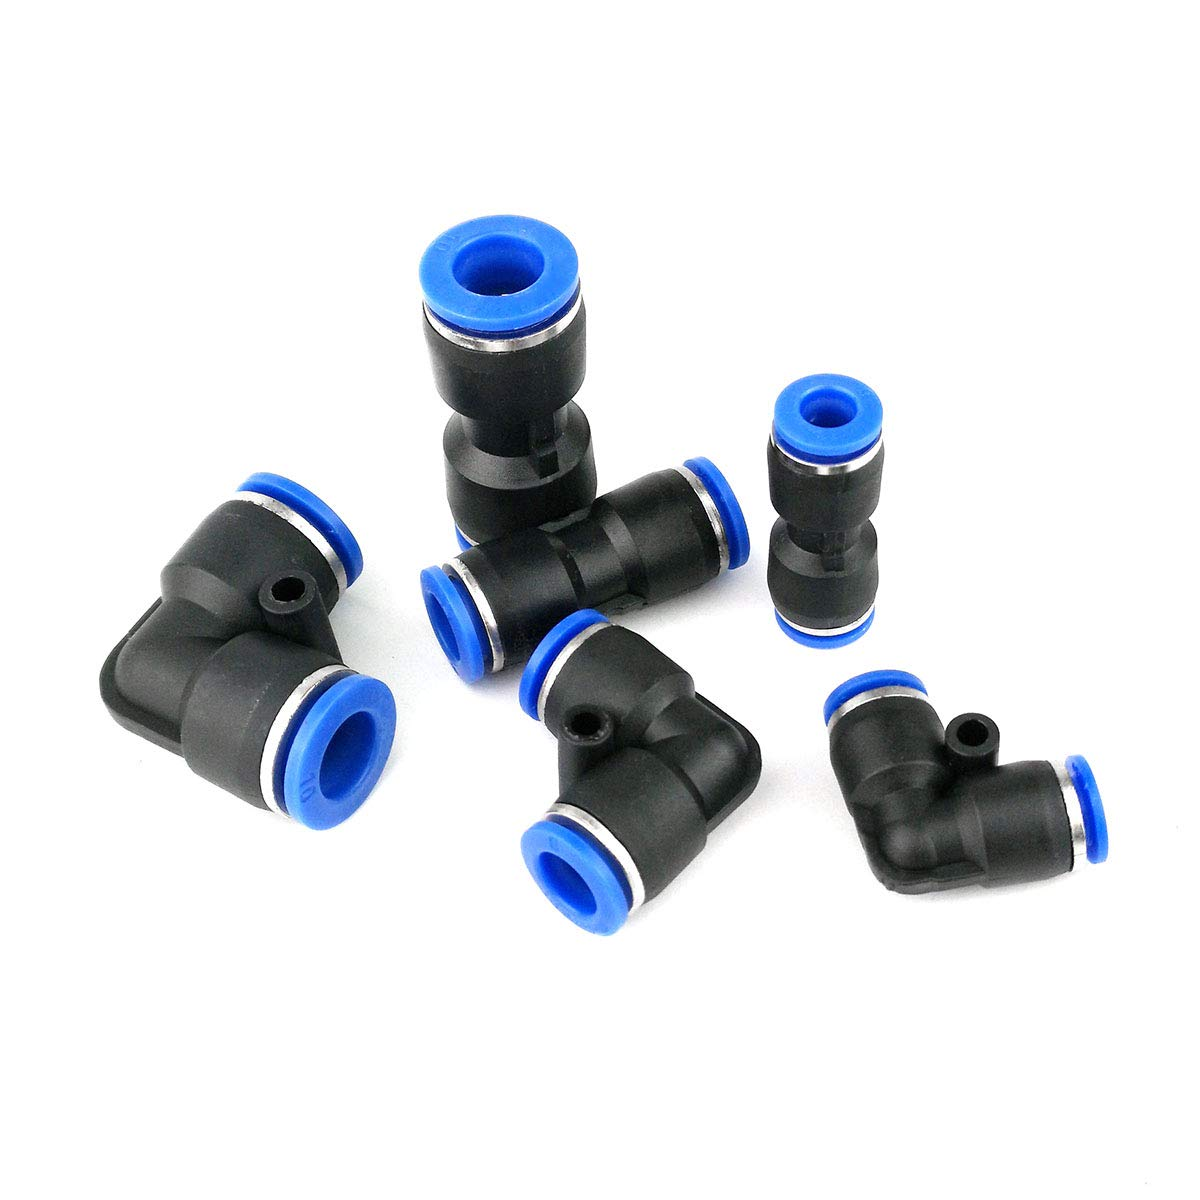 45 Pack Plastic Quick Release Connectors Straight Push Connectors Elbow Connectors Air Tool Fittings for 1//4 5//16 3//8 Tube